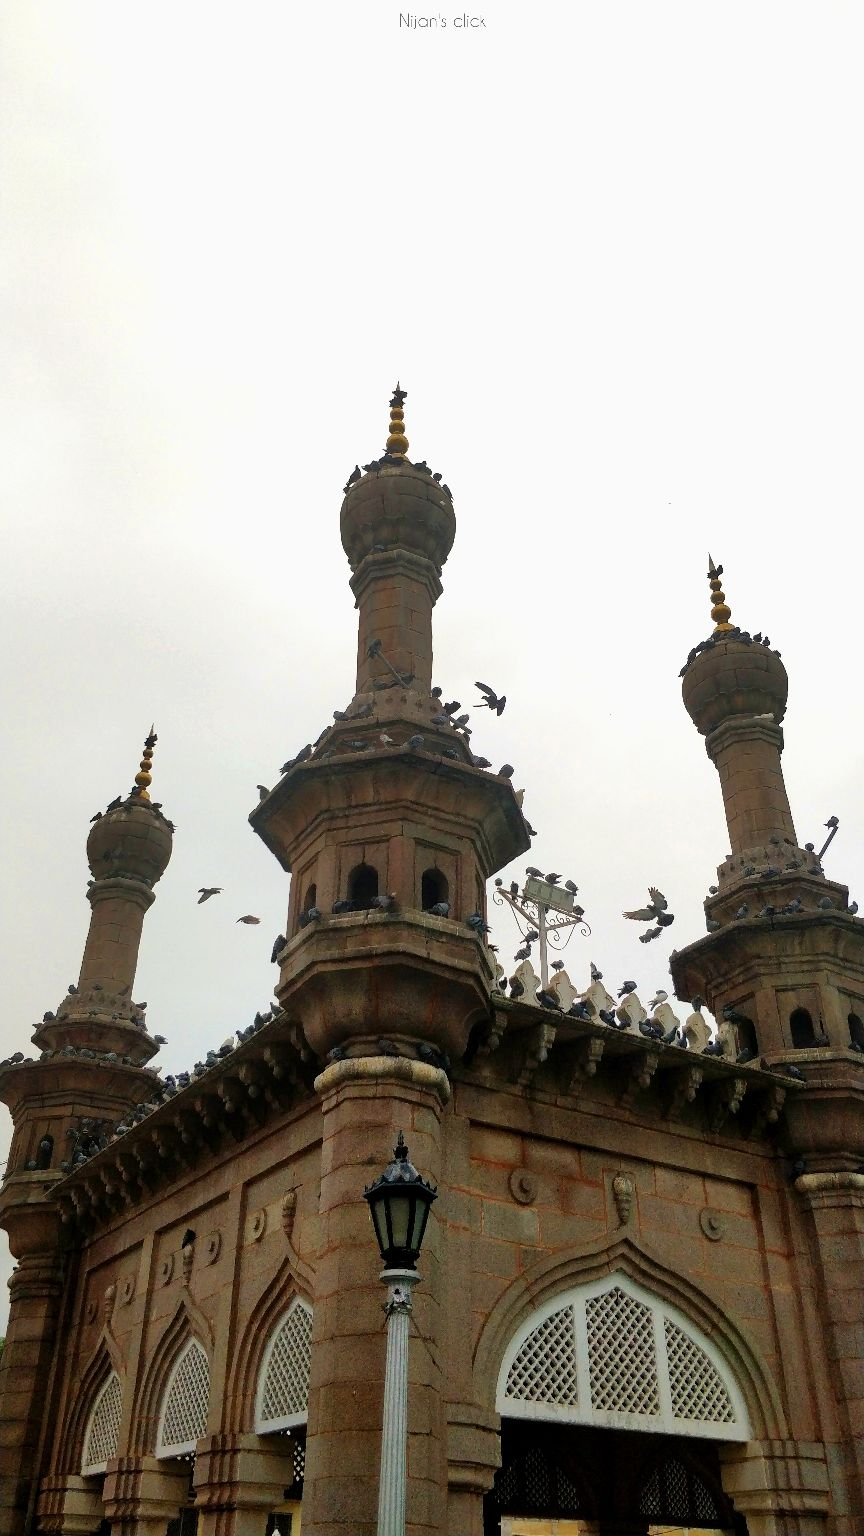 Photo of Jama Masjid By Nijan